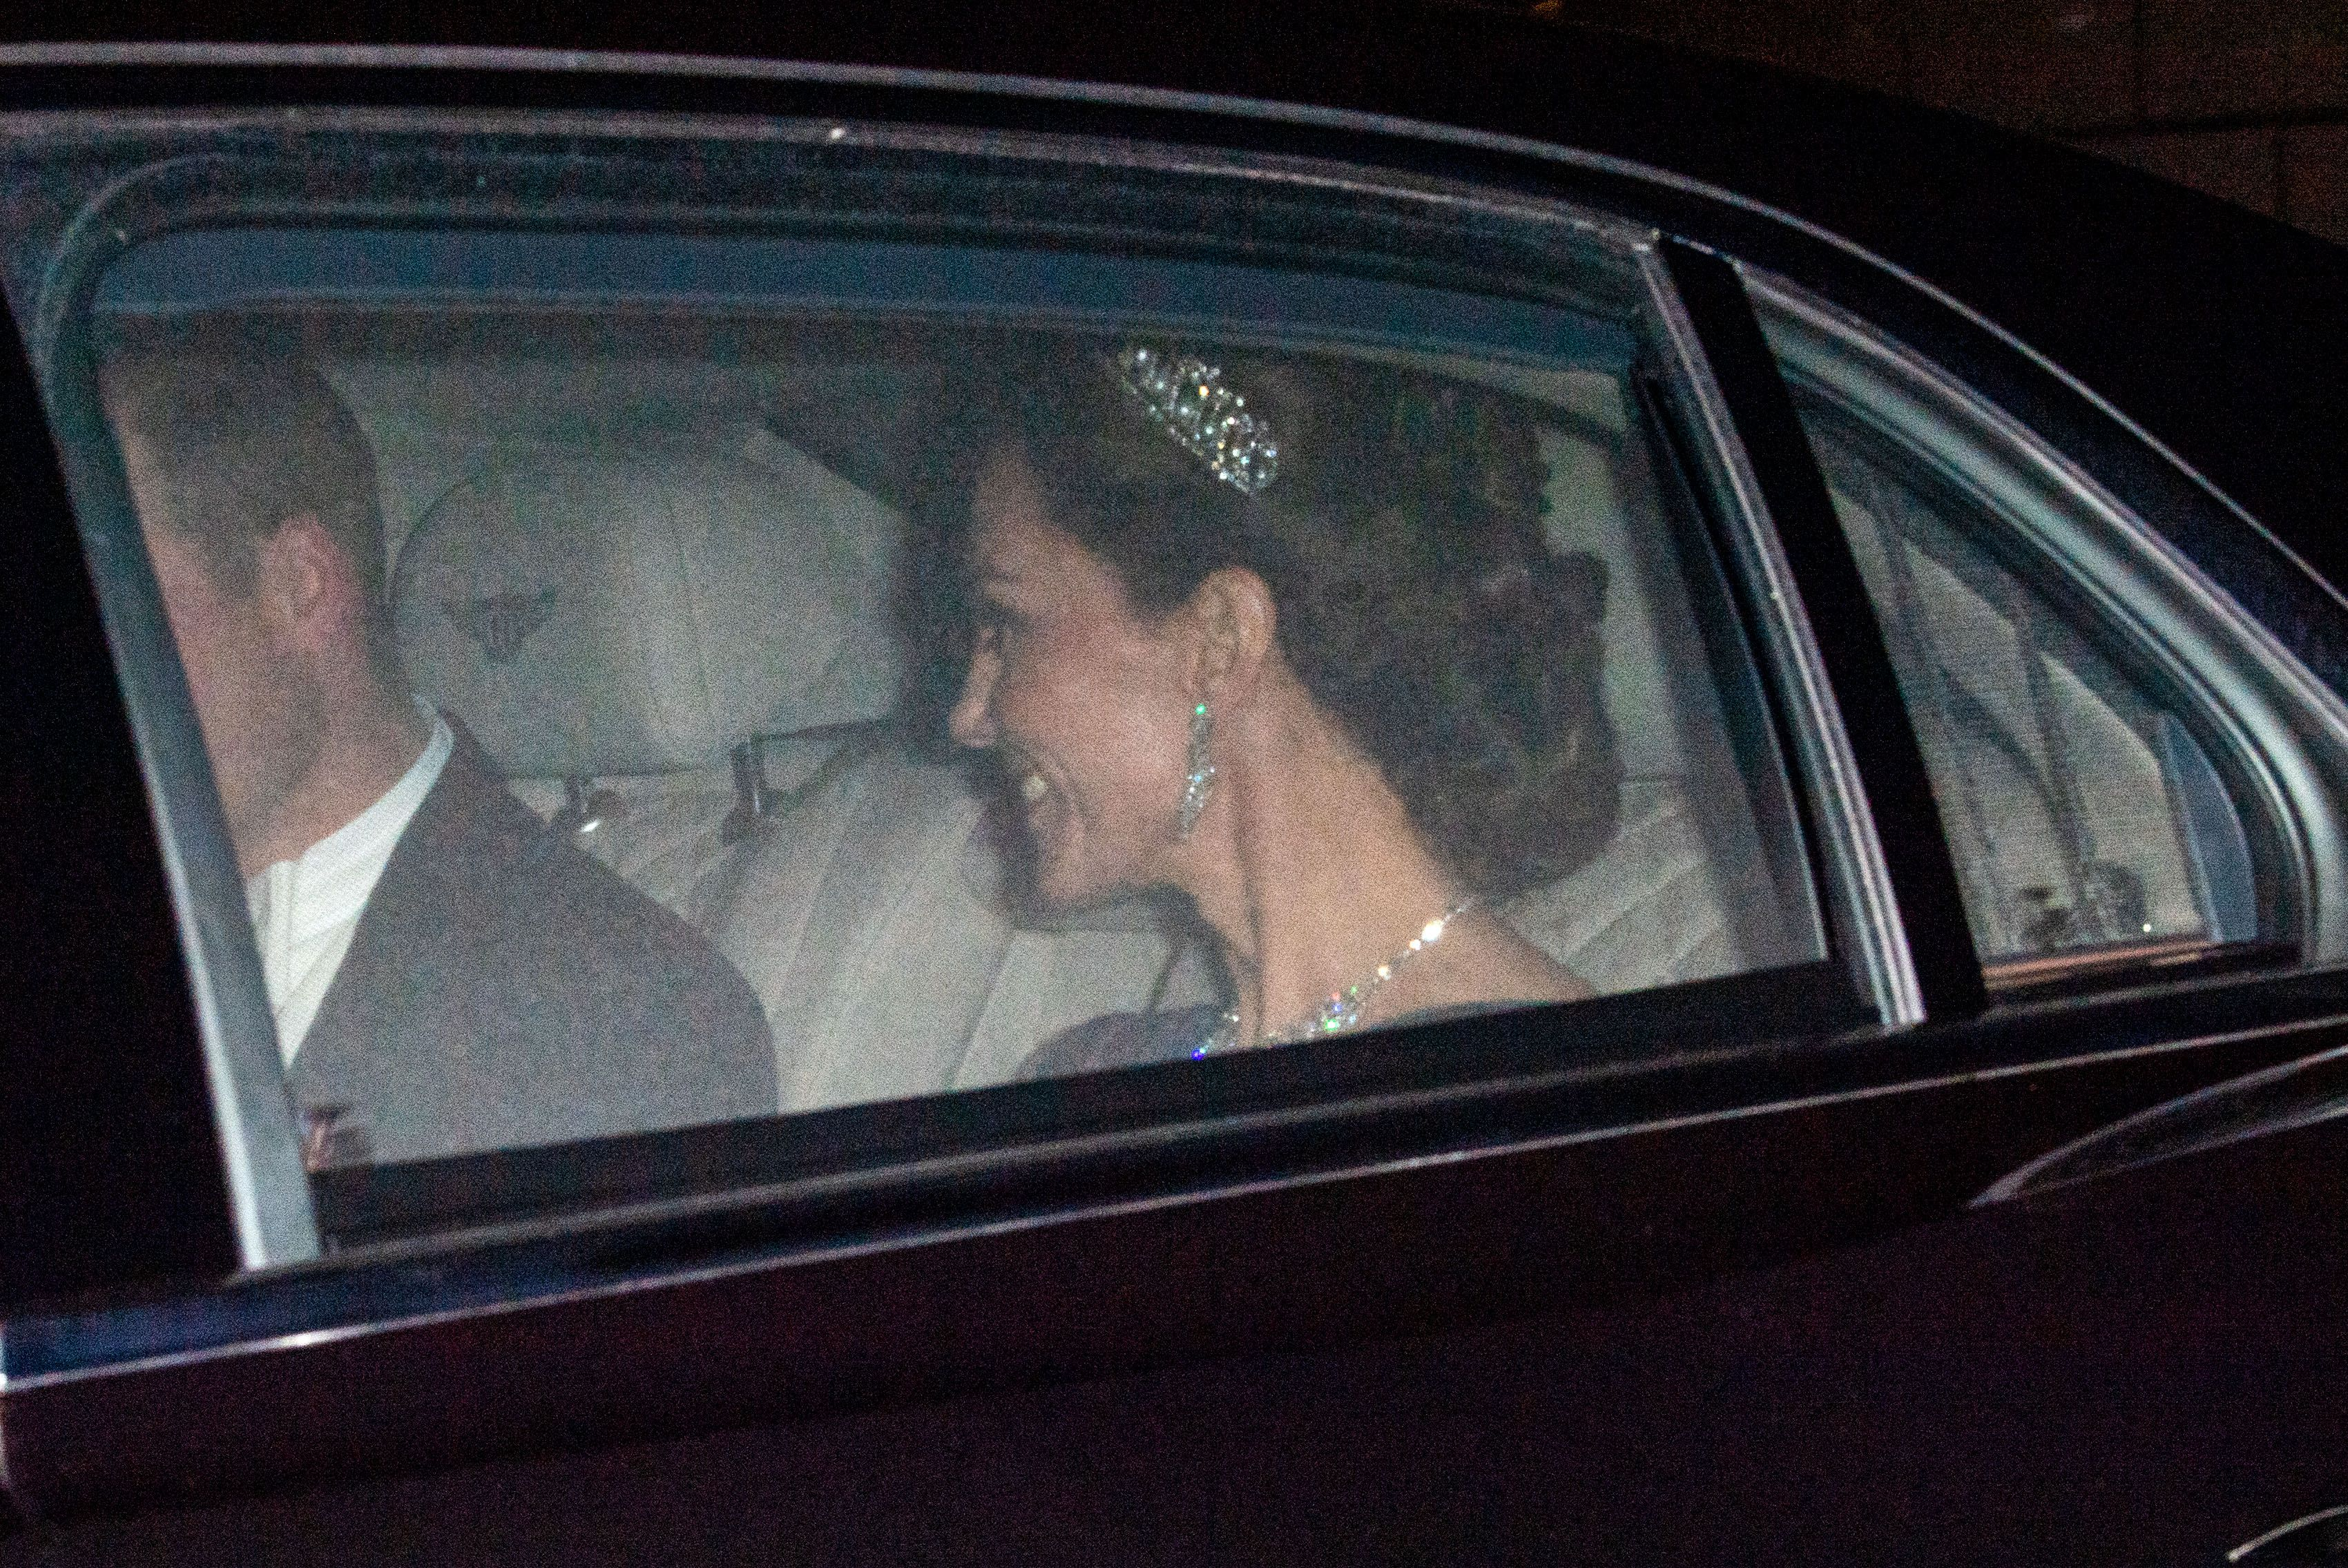 Kate Middleton Wears the Cambridge Lover's Knot Tiara and Diamond Earrings to the Queen's Diplomatic Corps Reception in 2019